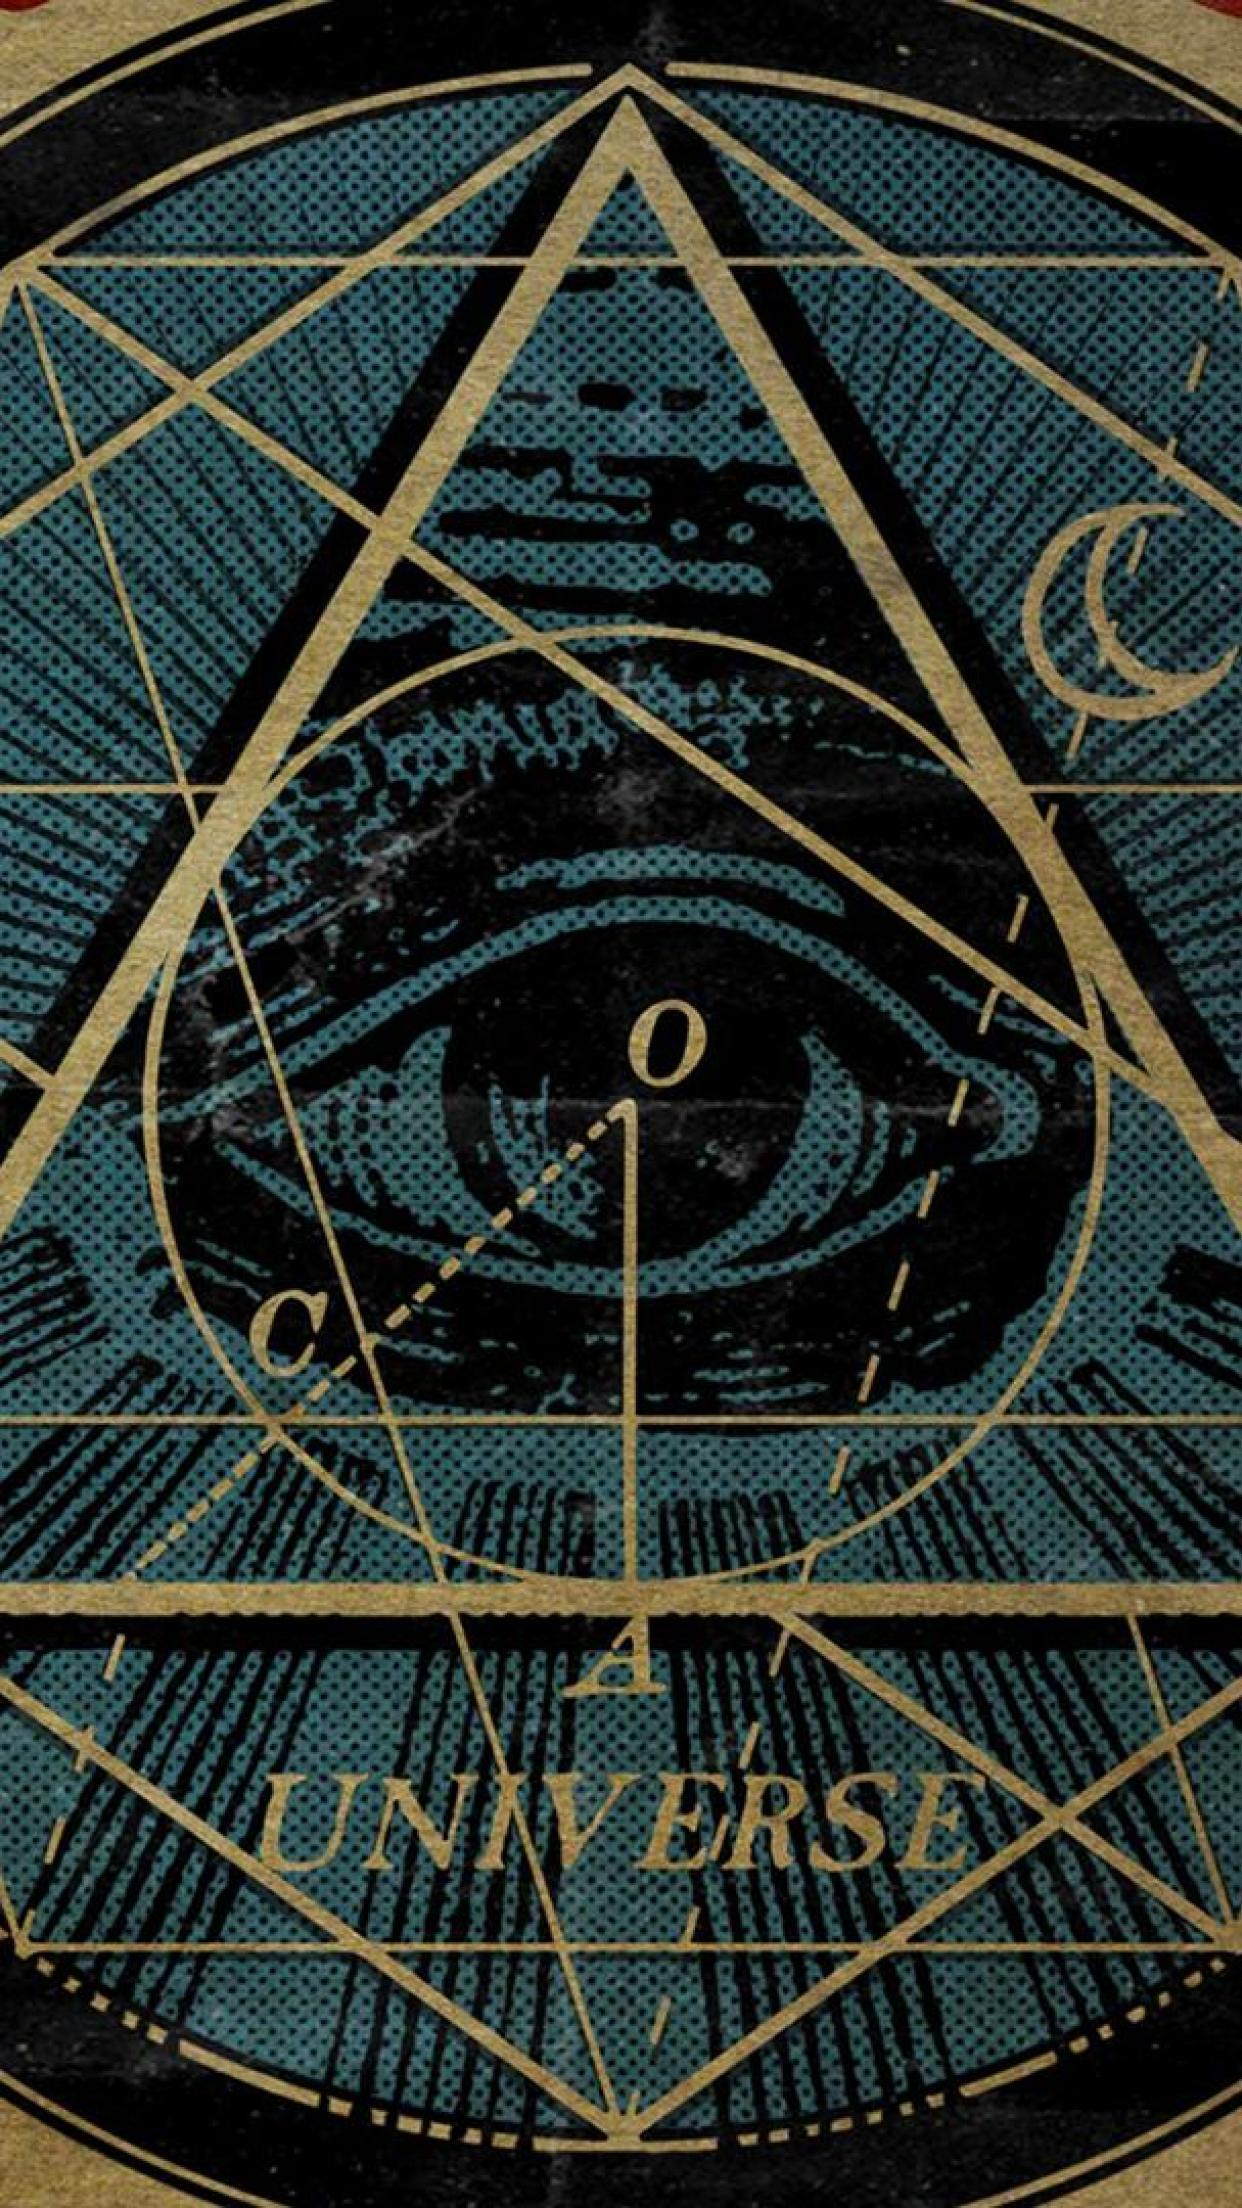 Illuminati Wallpaper (24)